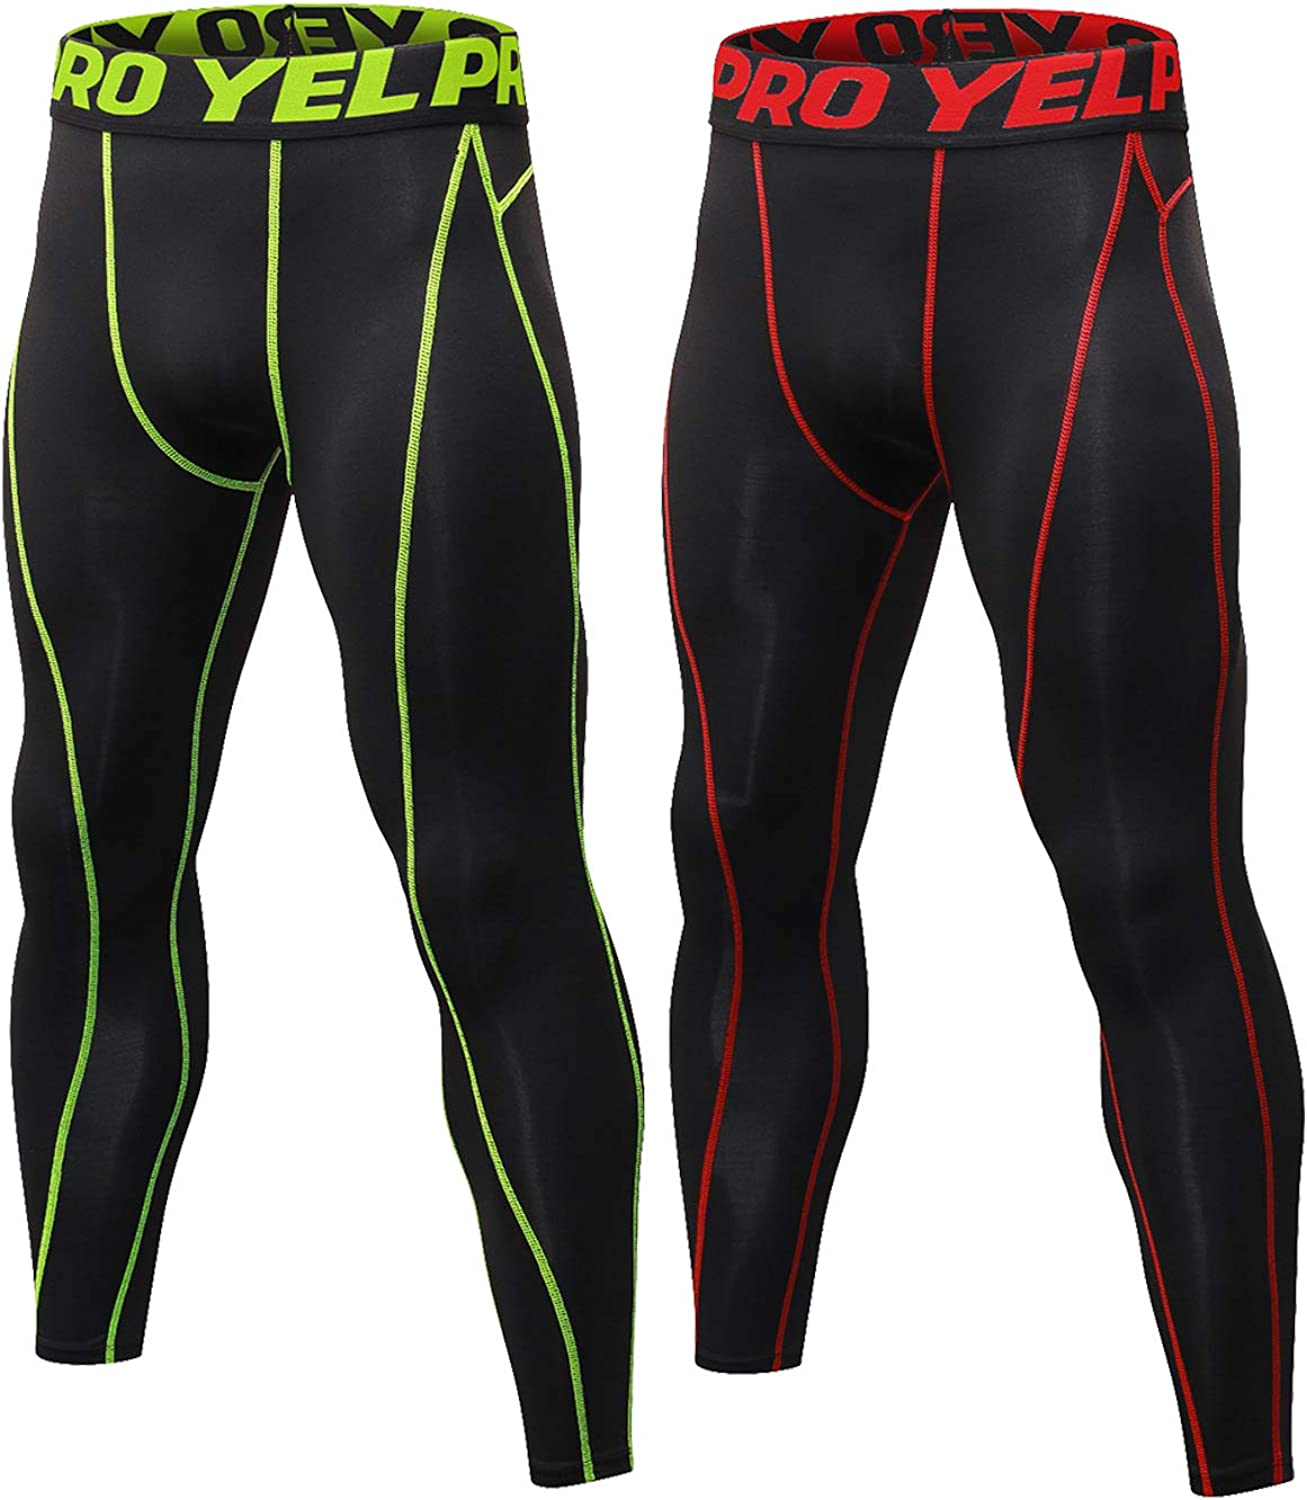 LNJLVI Mens 2 Pack Compression Pants Running Leggings Baselayer Cool Dry Sports Tights